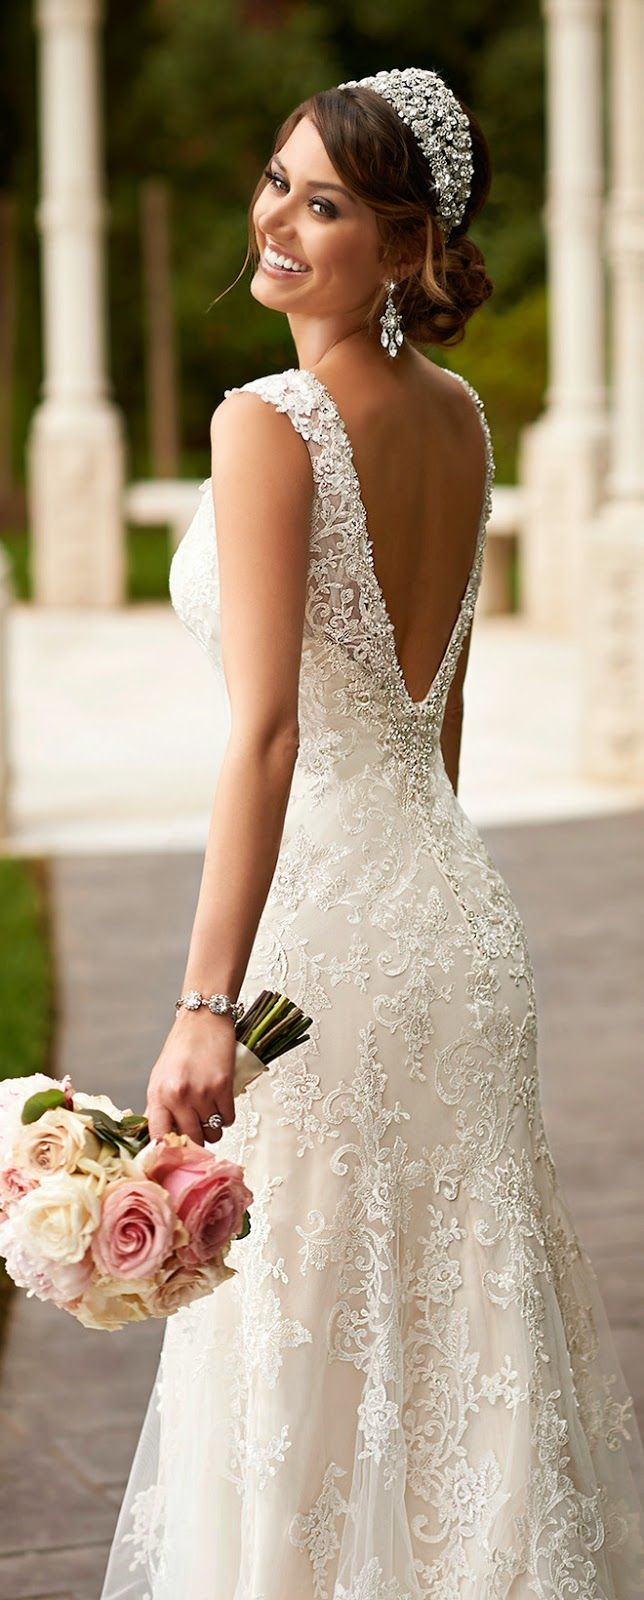 tips for wedding dress shopping | weddingdates blog